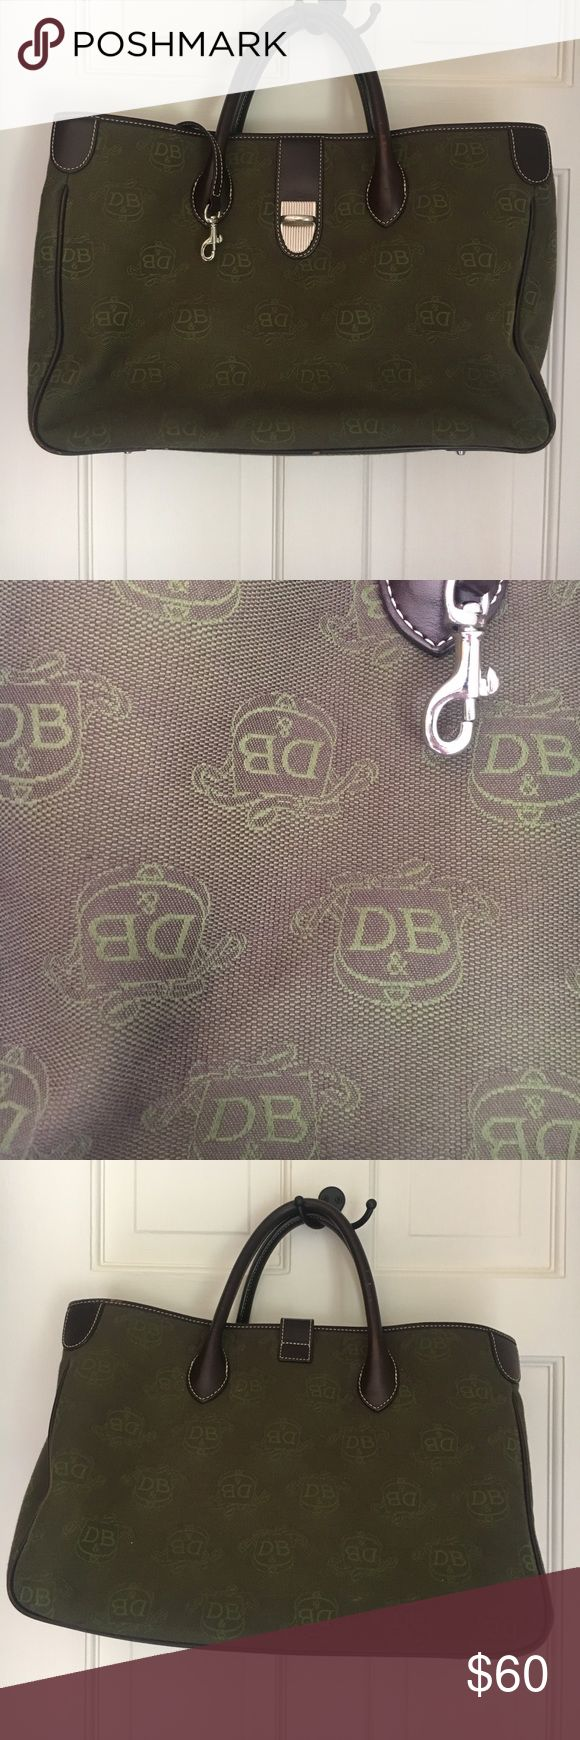 """Dooney and Bourke Tote Like New only used a few times and has no signs of wear. Beautiful green with DB shield. Removable shoulder strap with make up case and eyeglass case included. Very roomy with 2 large compartments divided by a center zip compartment, Key fab attachment, 2 cell pockets and an interior side zipped pocket.  14"""" L x 9"""" H x 6"""" W Dooney & Bourke Bags"""